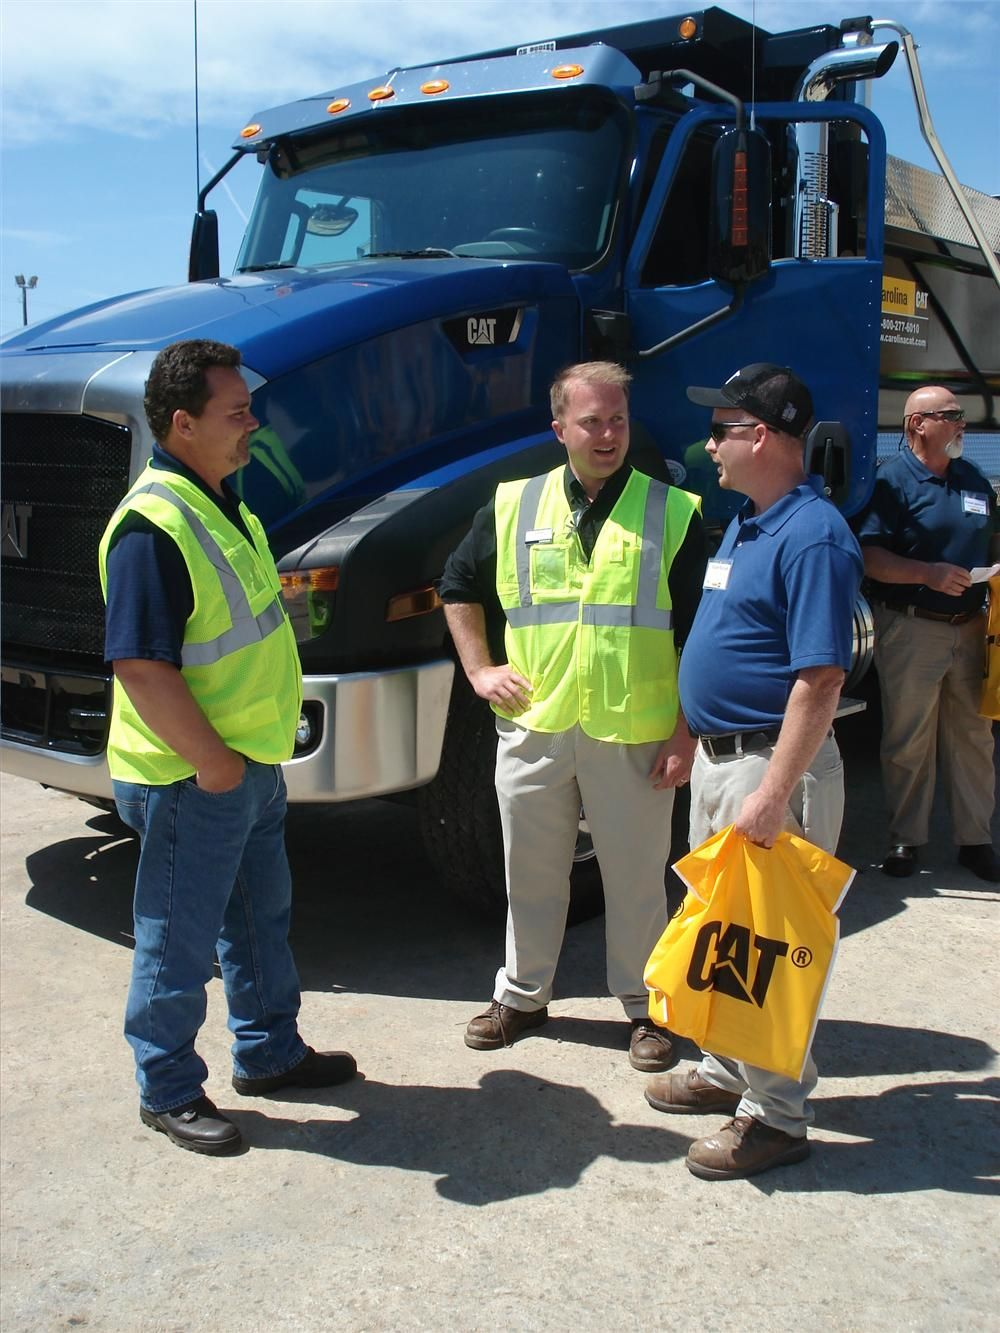 (L-R): Randy Ellison of Carolina CAT, Steve Goggins of Cat and Adam Keziah of Johnson Concrete Company in Salisbury, N.C. stand in front of the Cat CT660 vocational truck.